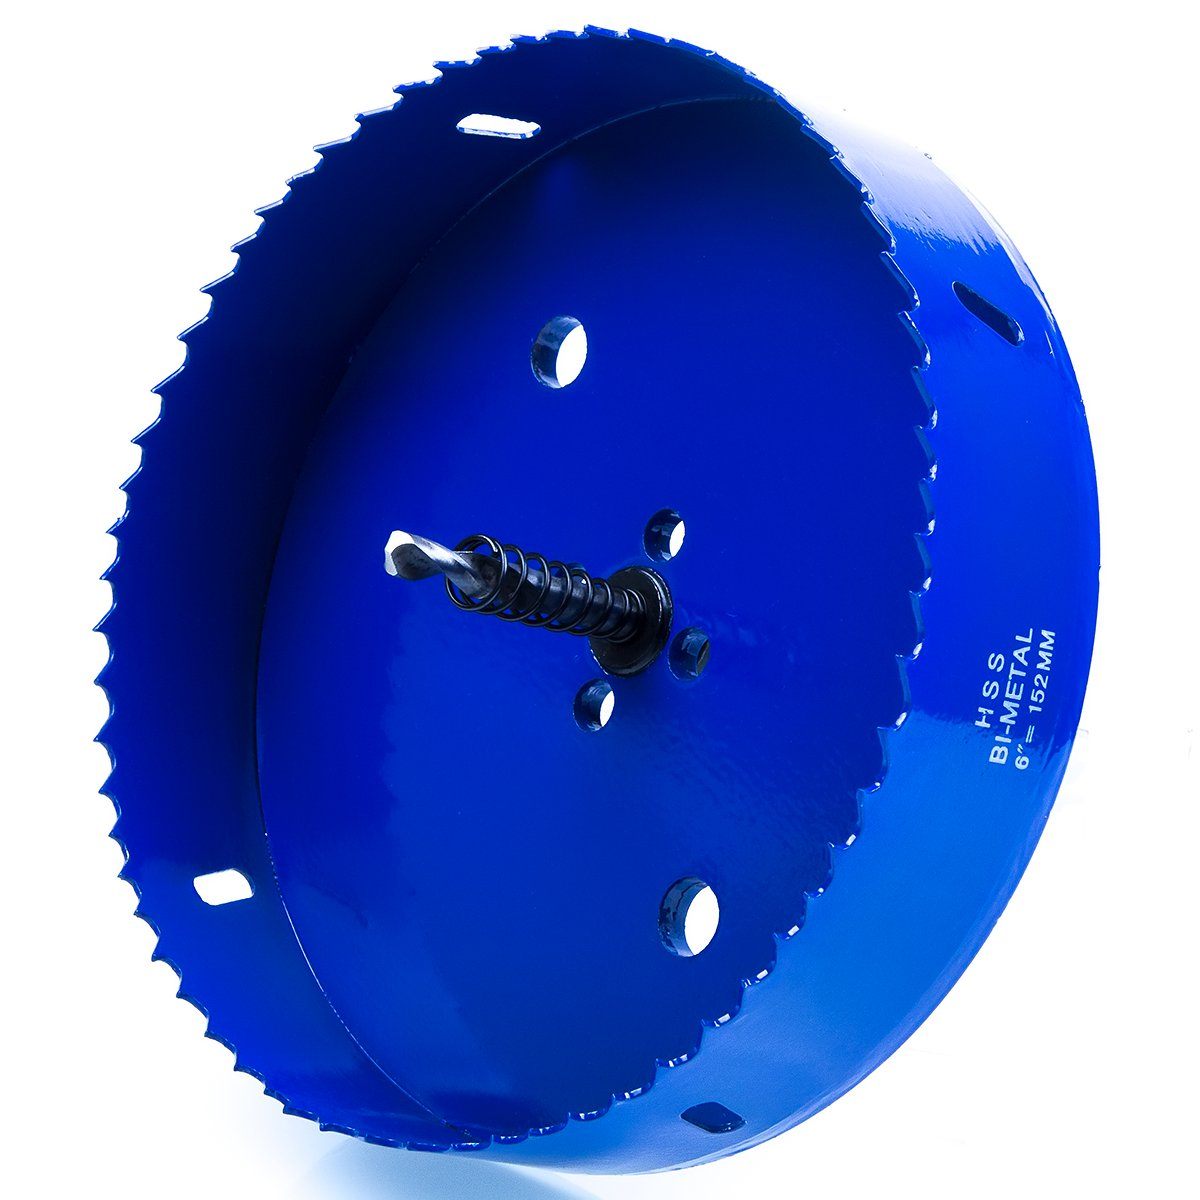 Eliseo 6 inch 152 mm Hole Saw Blade for Cornhole Boards/Corn Hole Drilling Cutter & Hex Shank Drill Bit Adapter for Cornhole Game/Carbon Steel & BI-Metal Heavy Duty Steel (Blue)